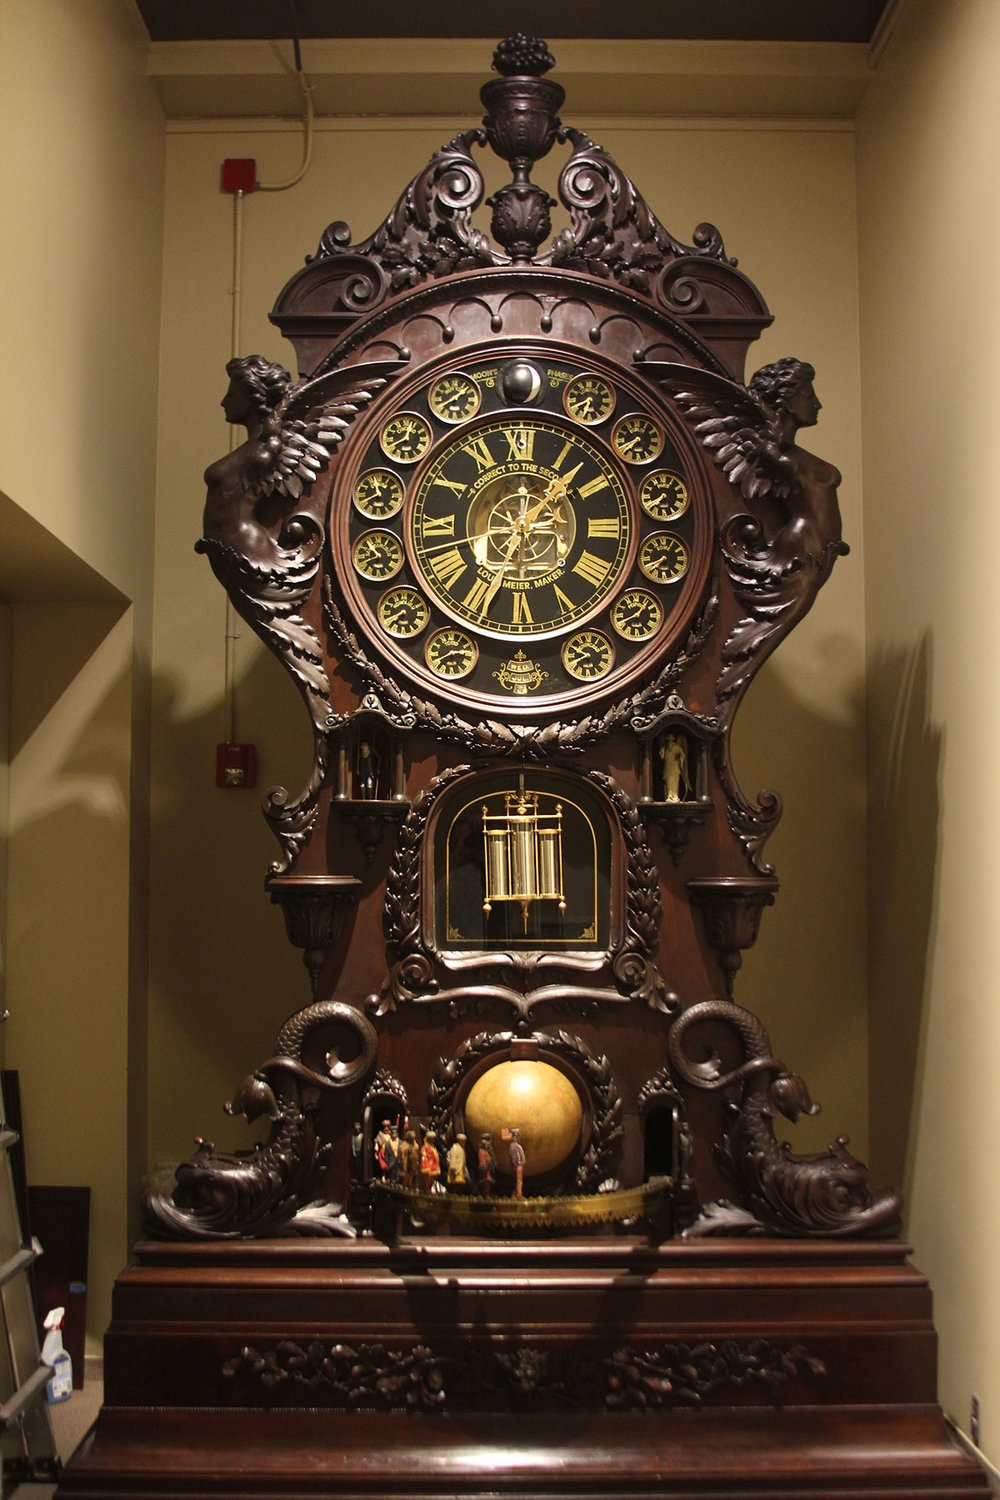 After: clock was restored to exhibition condition after conservation treatment